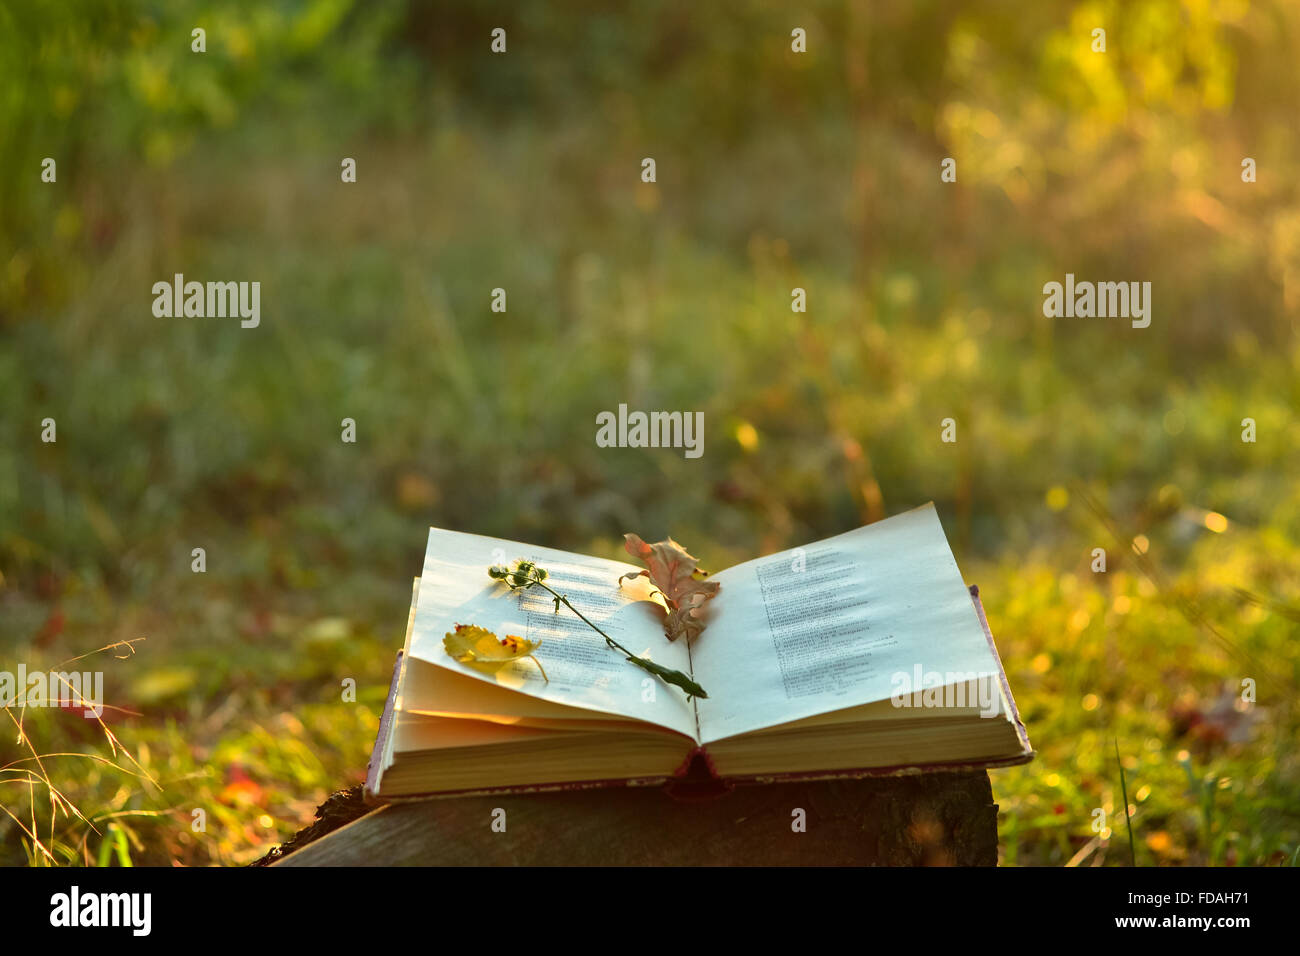 Book of poetry outdoors with fallen leaves and flower on it - Stock Image